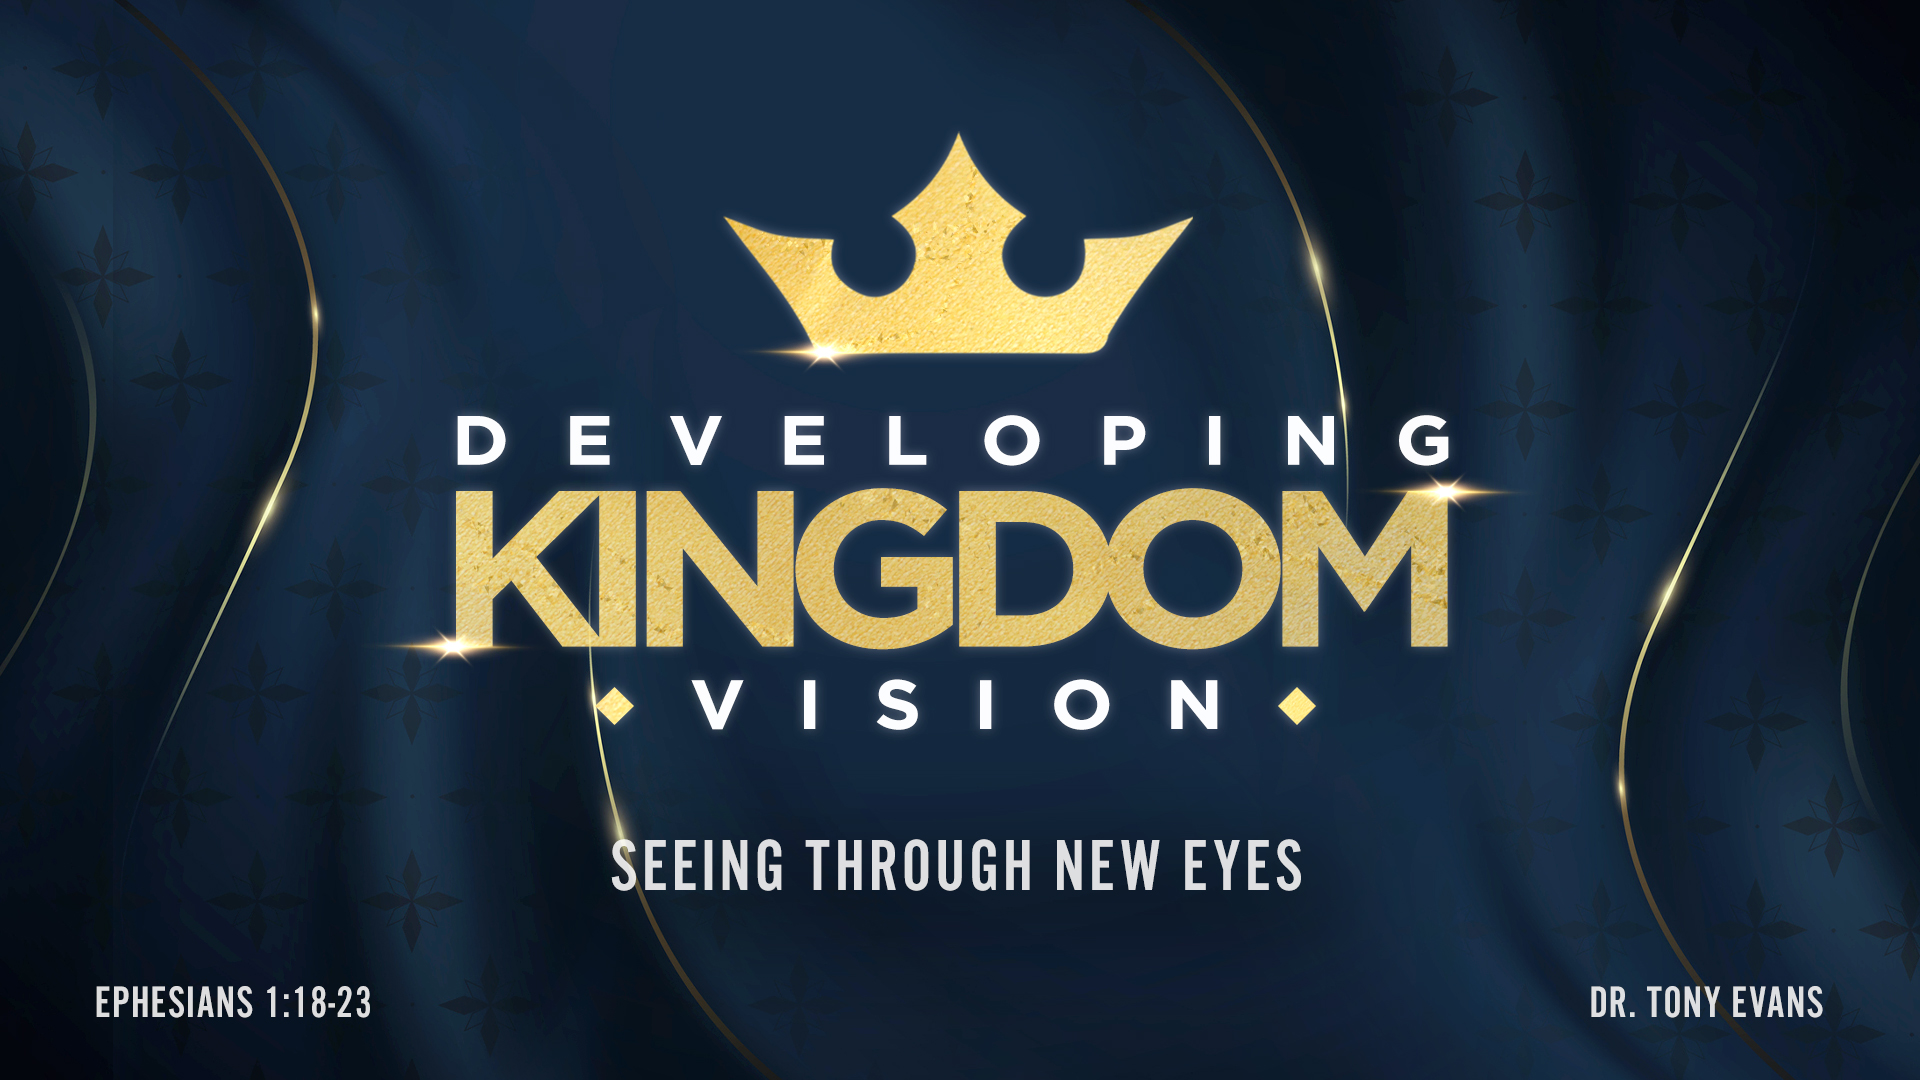 Developing Kingdom Vision Seeing through New Eyes by Dr. Tony Evans